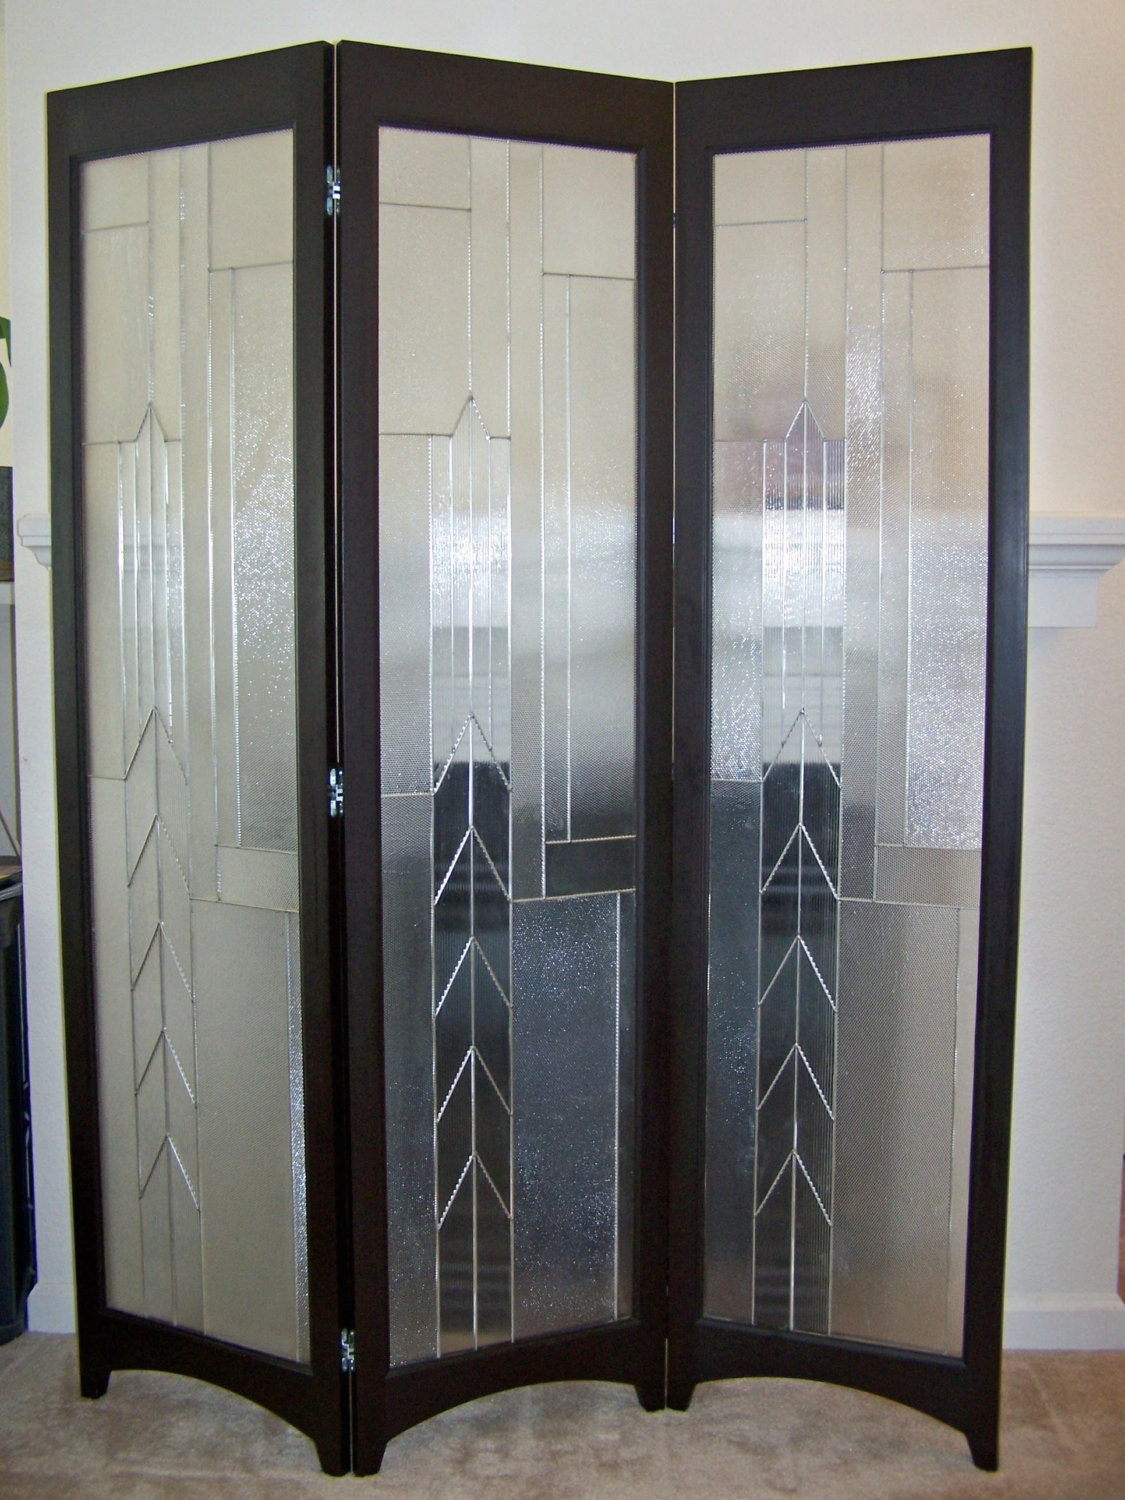 Stained glass room divider 3 panel screen metropolis java for Window dividers